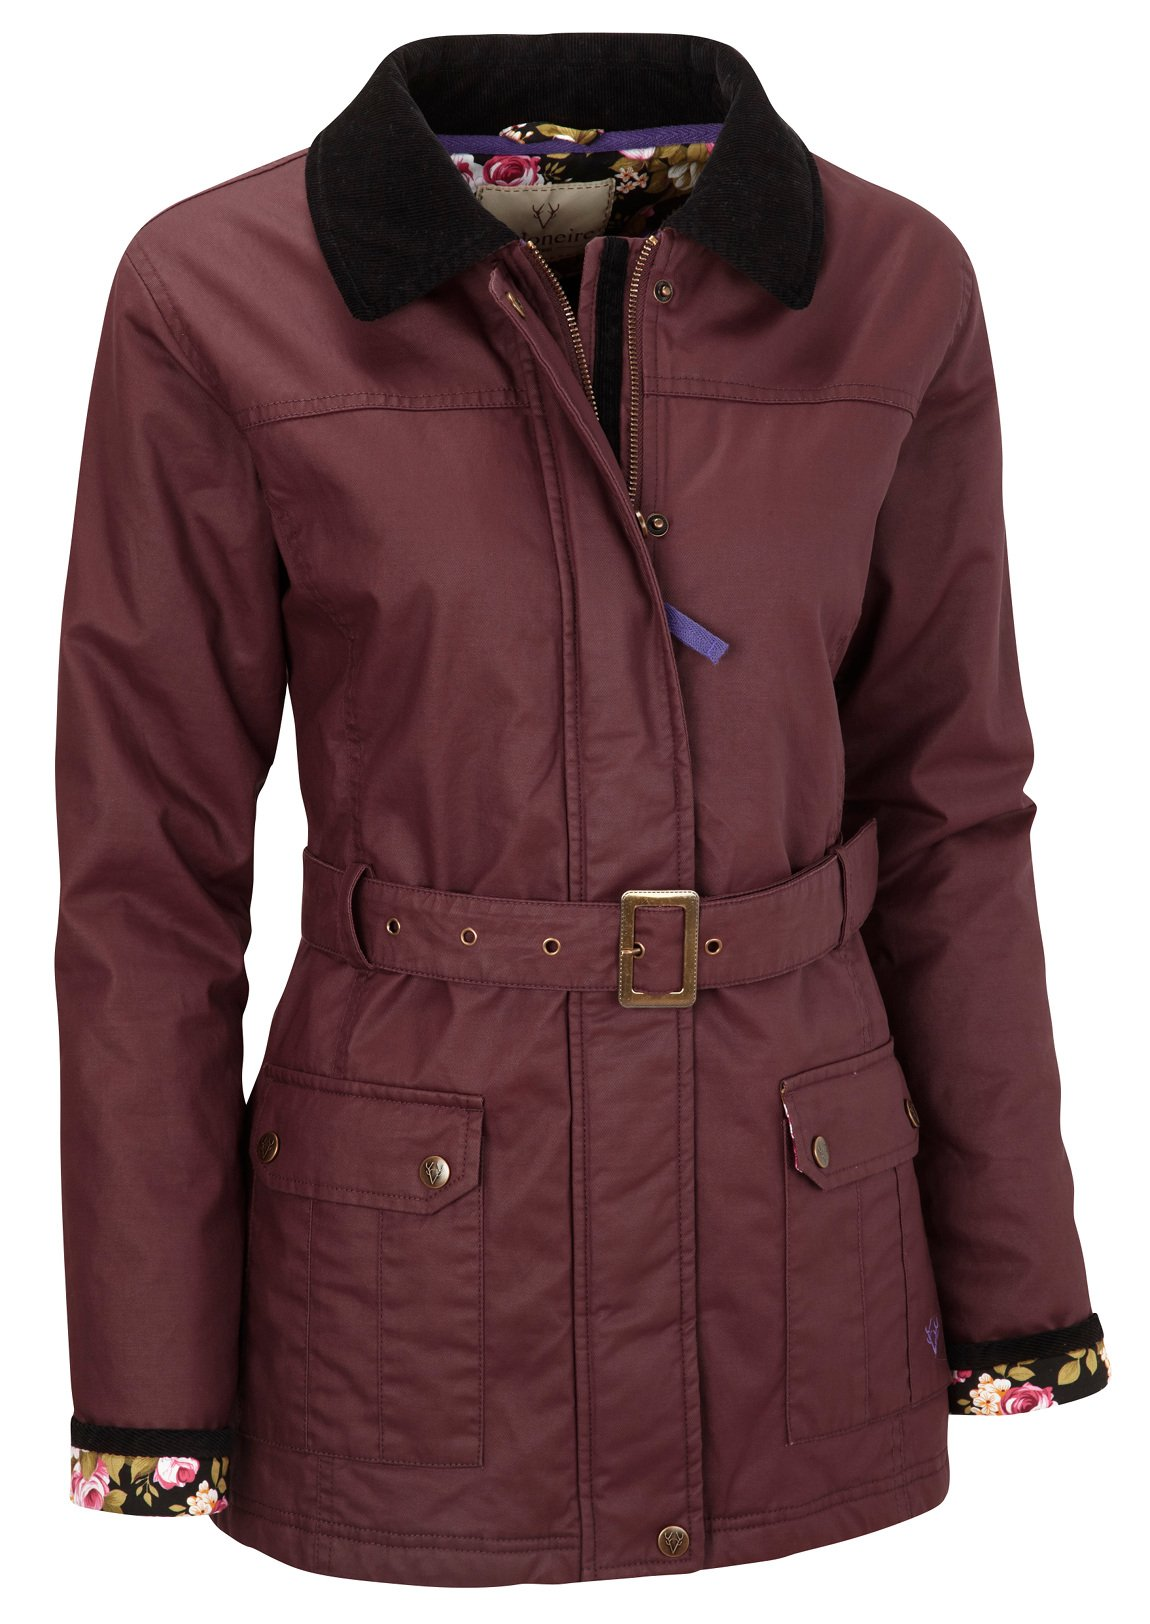 VEDONEIRE Womens Wax Jacket (5050) Burgundy red maroon motorcycle style belt (M (up to 36 inch chest)) by Vedoneire